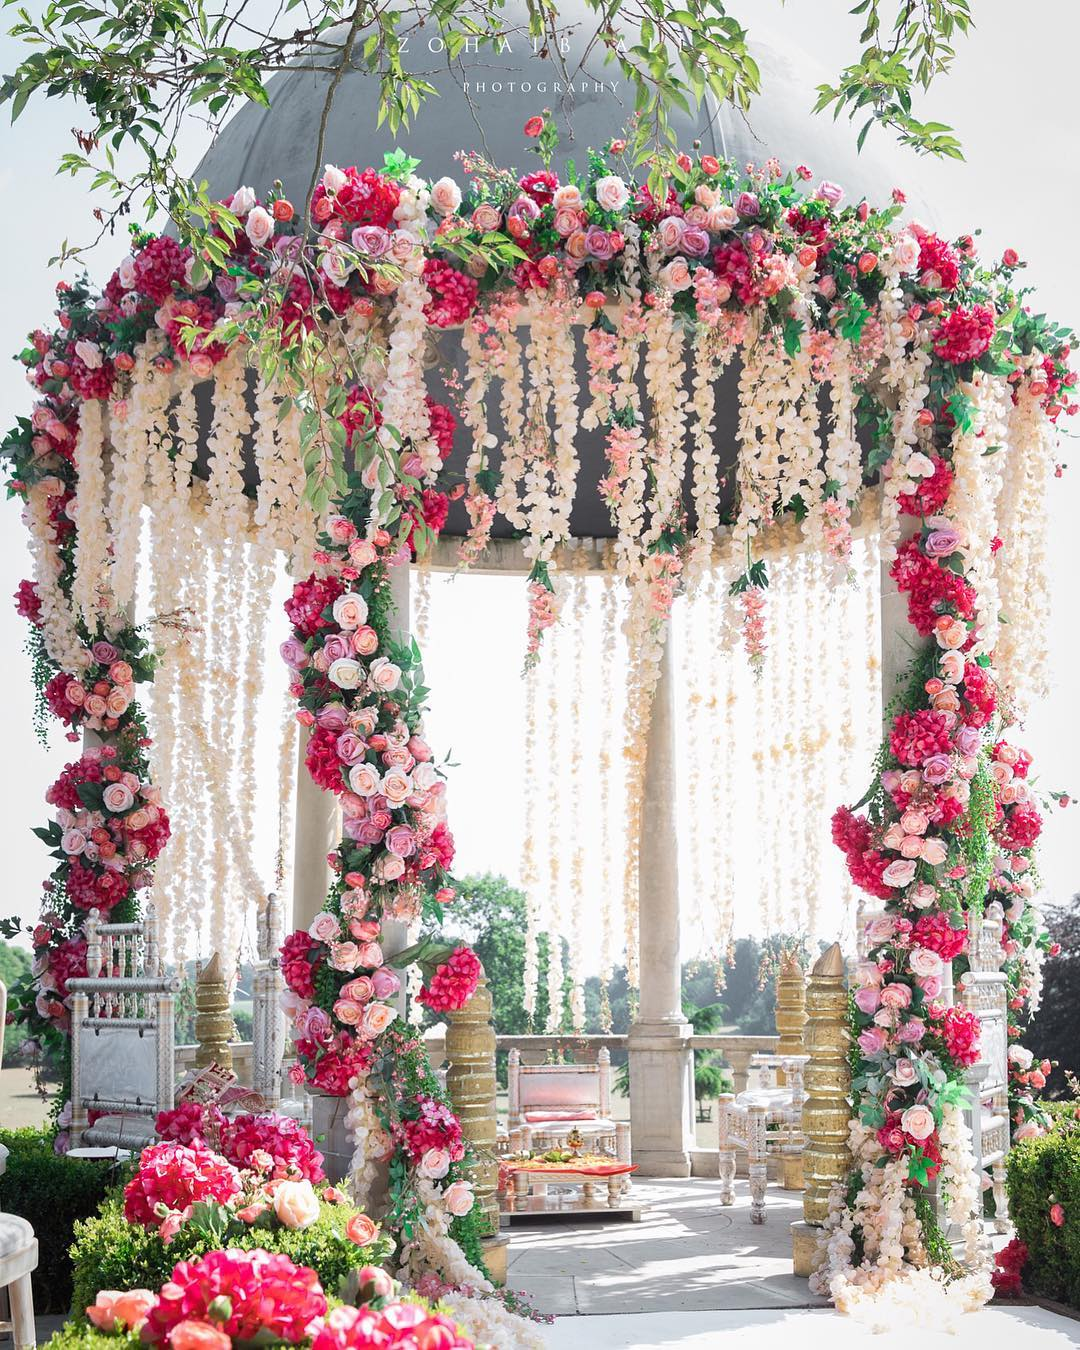 Wedding mandap decoration with flowers in shades of pink and white - using an existing dome structure at the venue